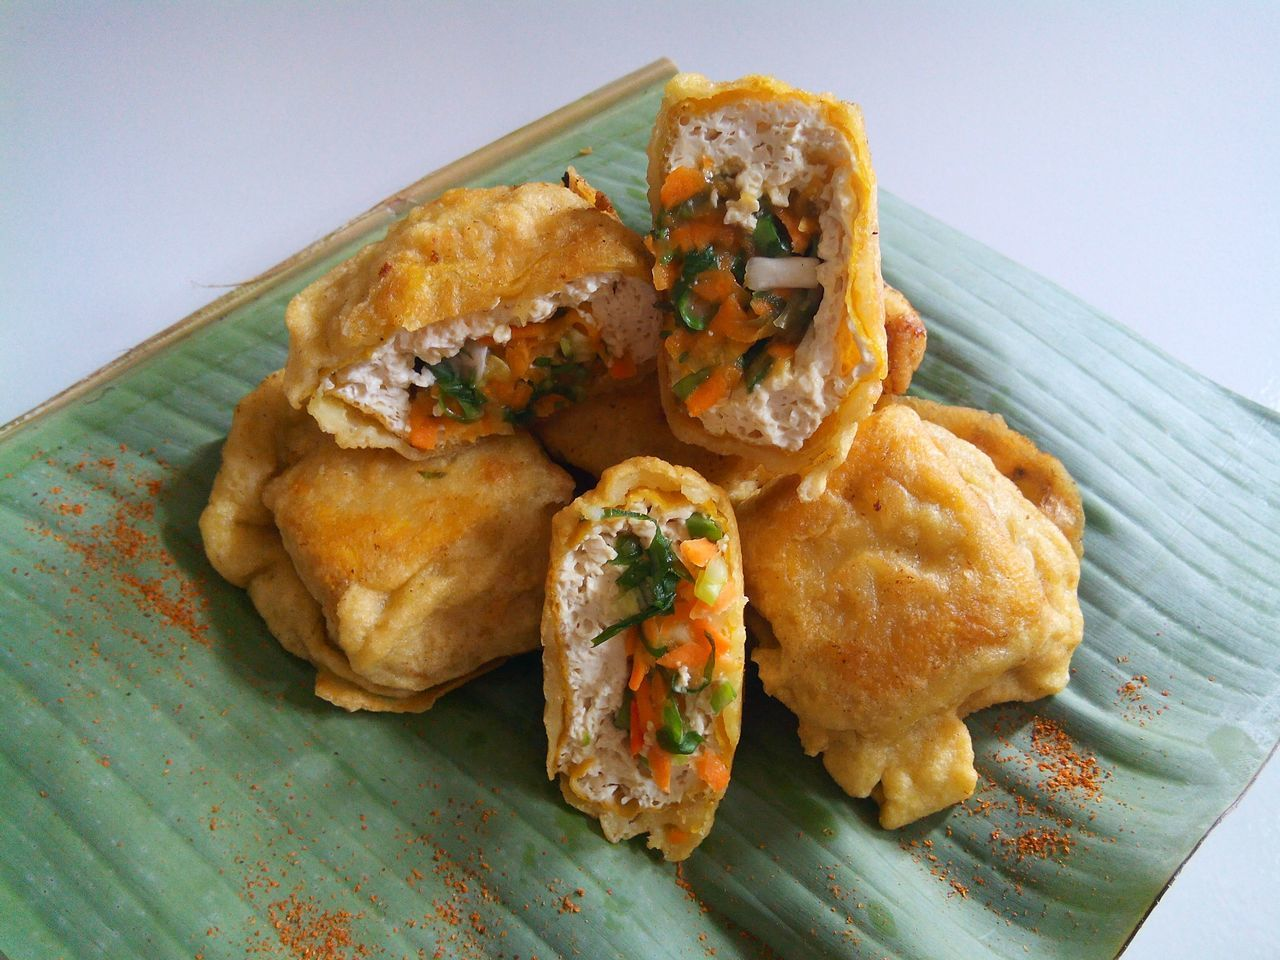 Gehu pedas Ready-to-eat Food Hot Delicious Gehupedas Bandung EyeEmNewHere